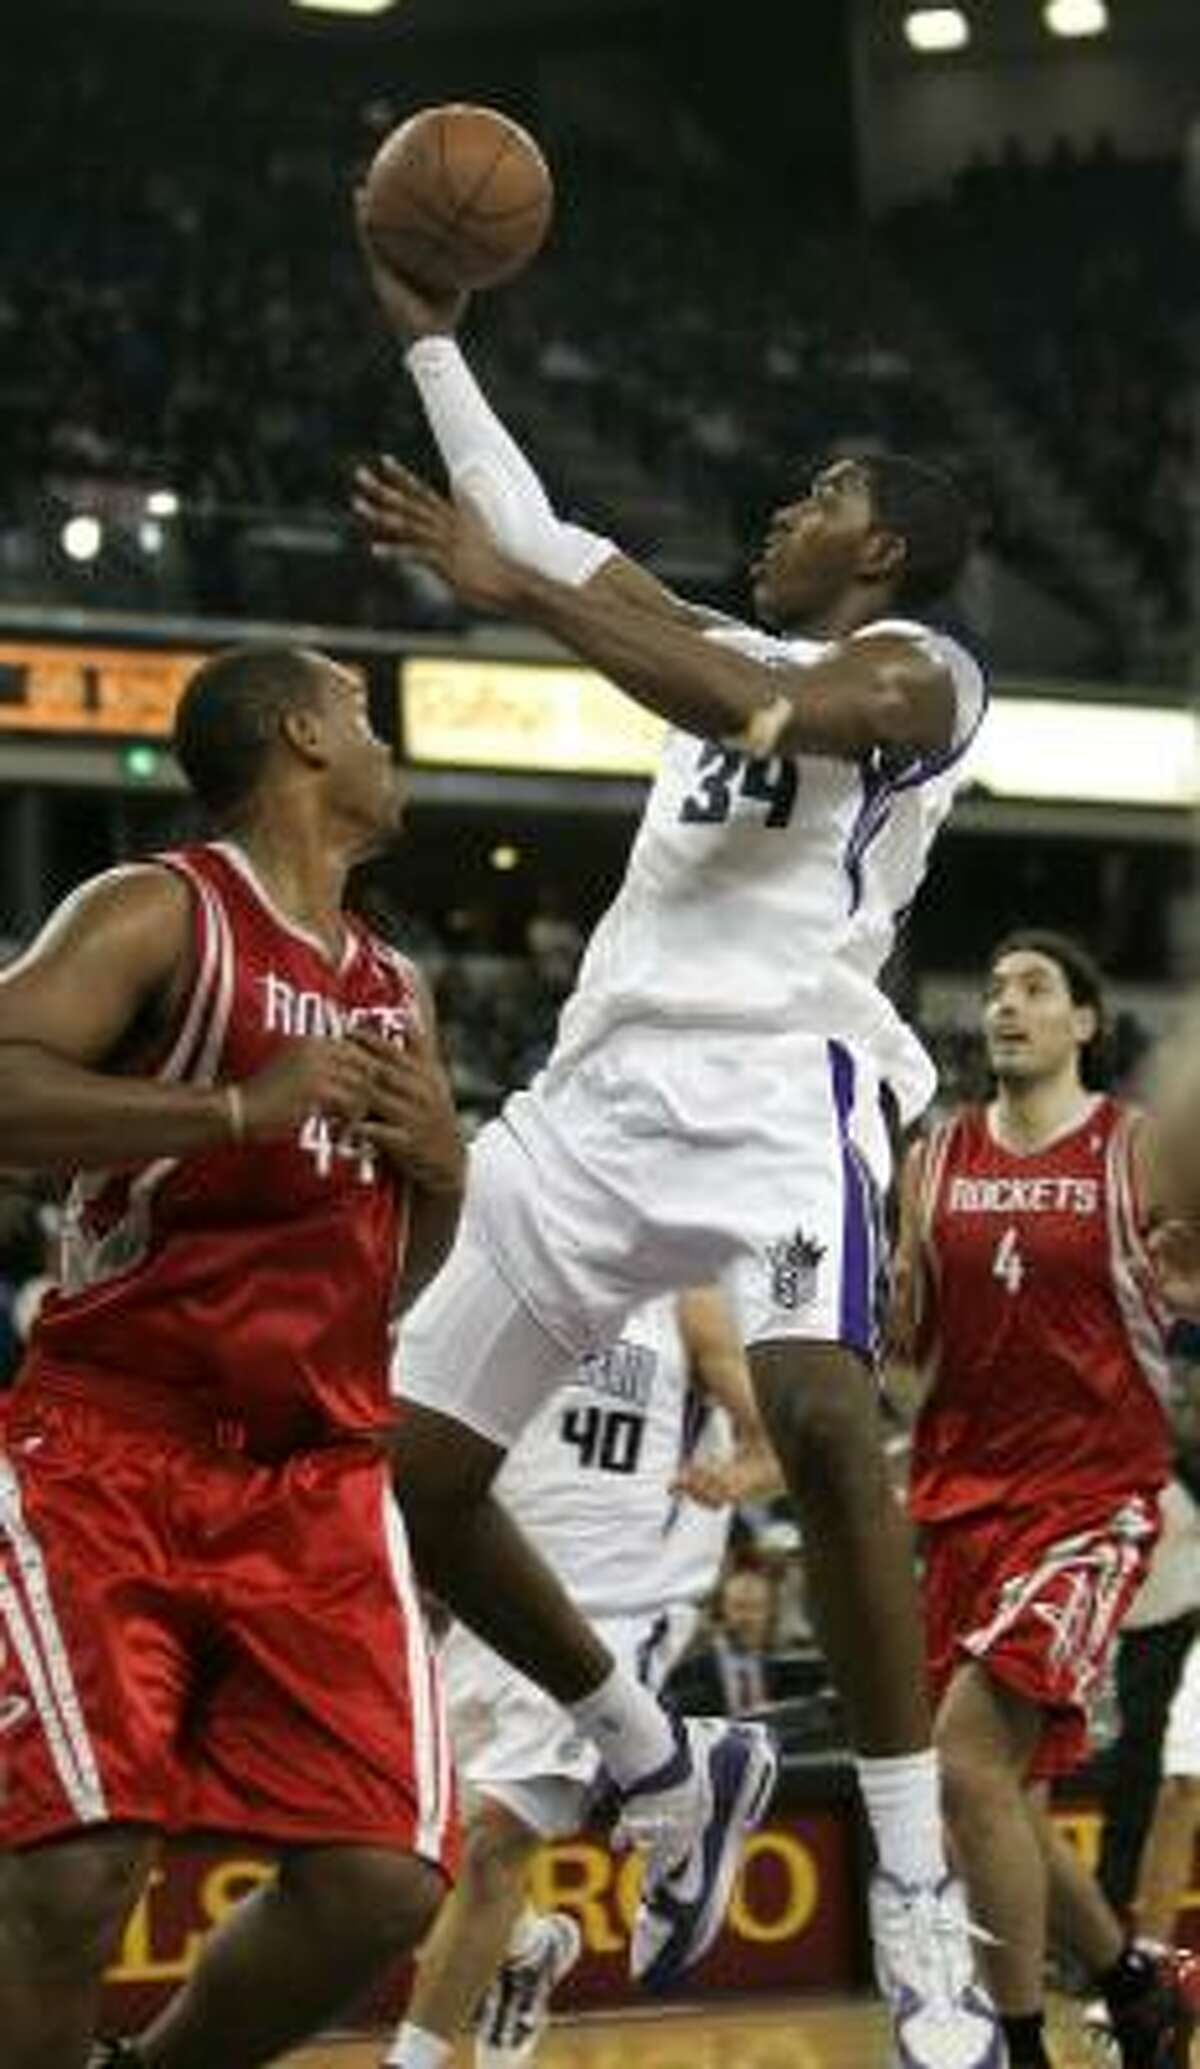 The Rockets struggled to contain Sacramento forward Jason Thompson, center, who had 27 points and 11 rebounds in the Kings' 109-110 win on Friday night in Sacramento, Calif.